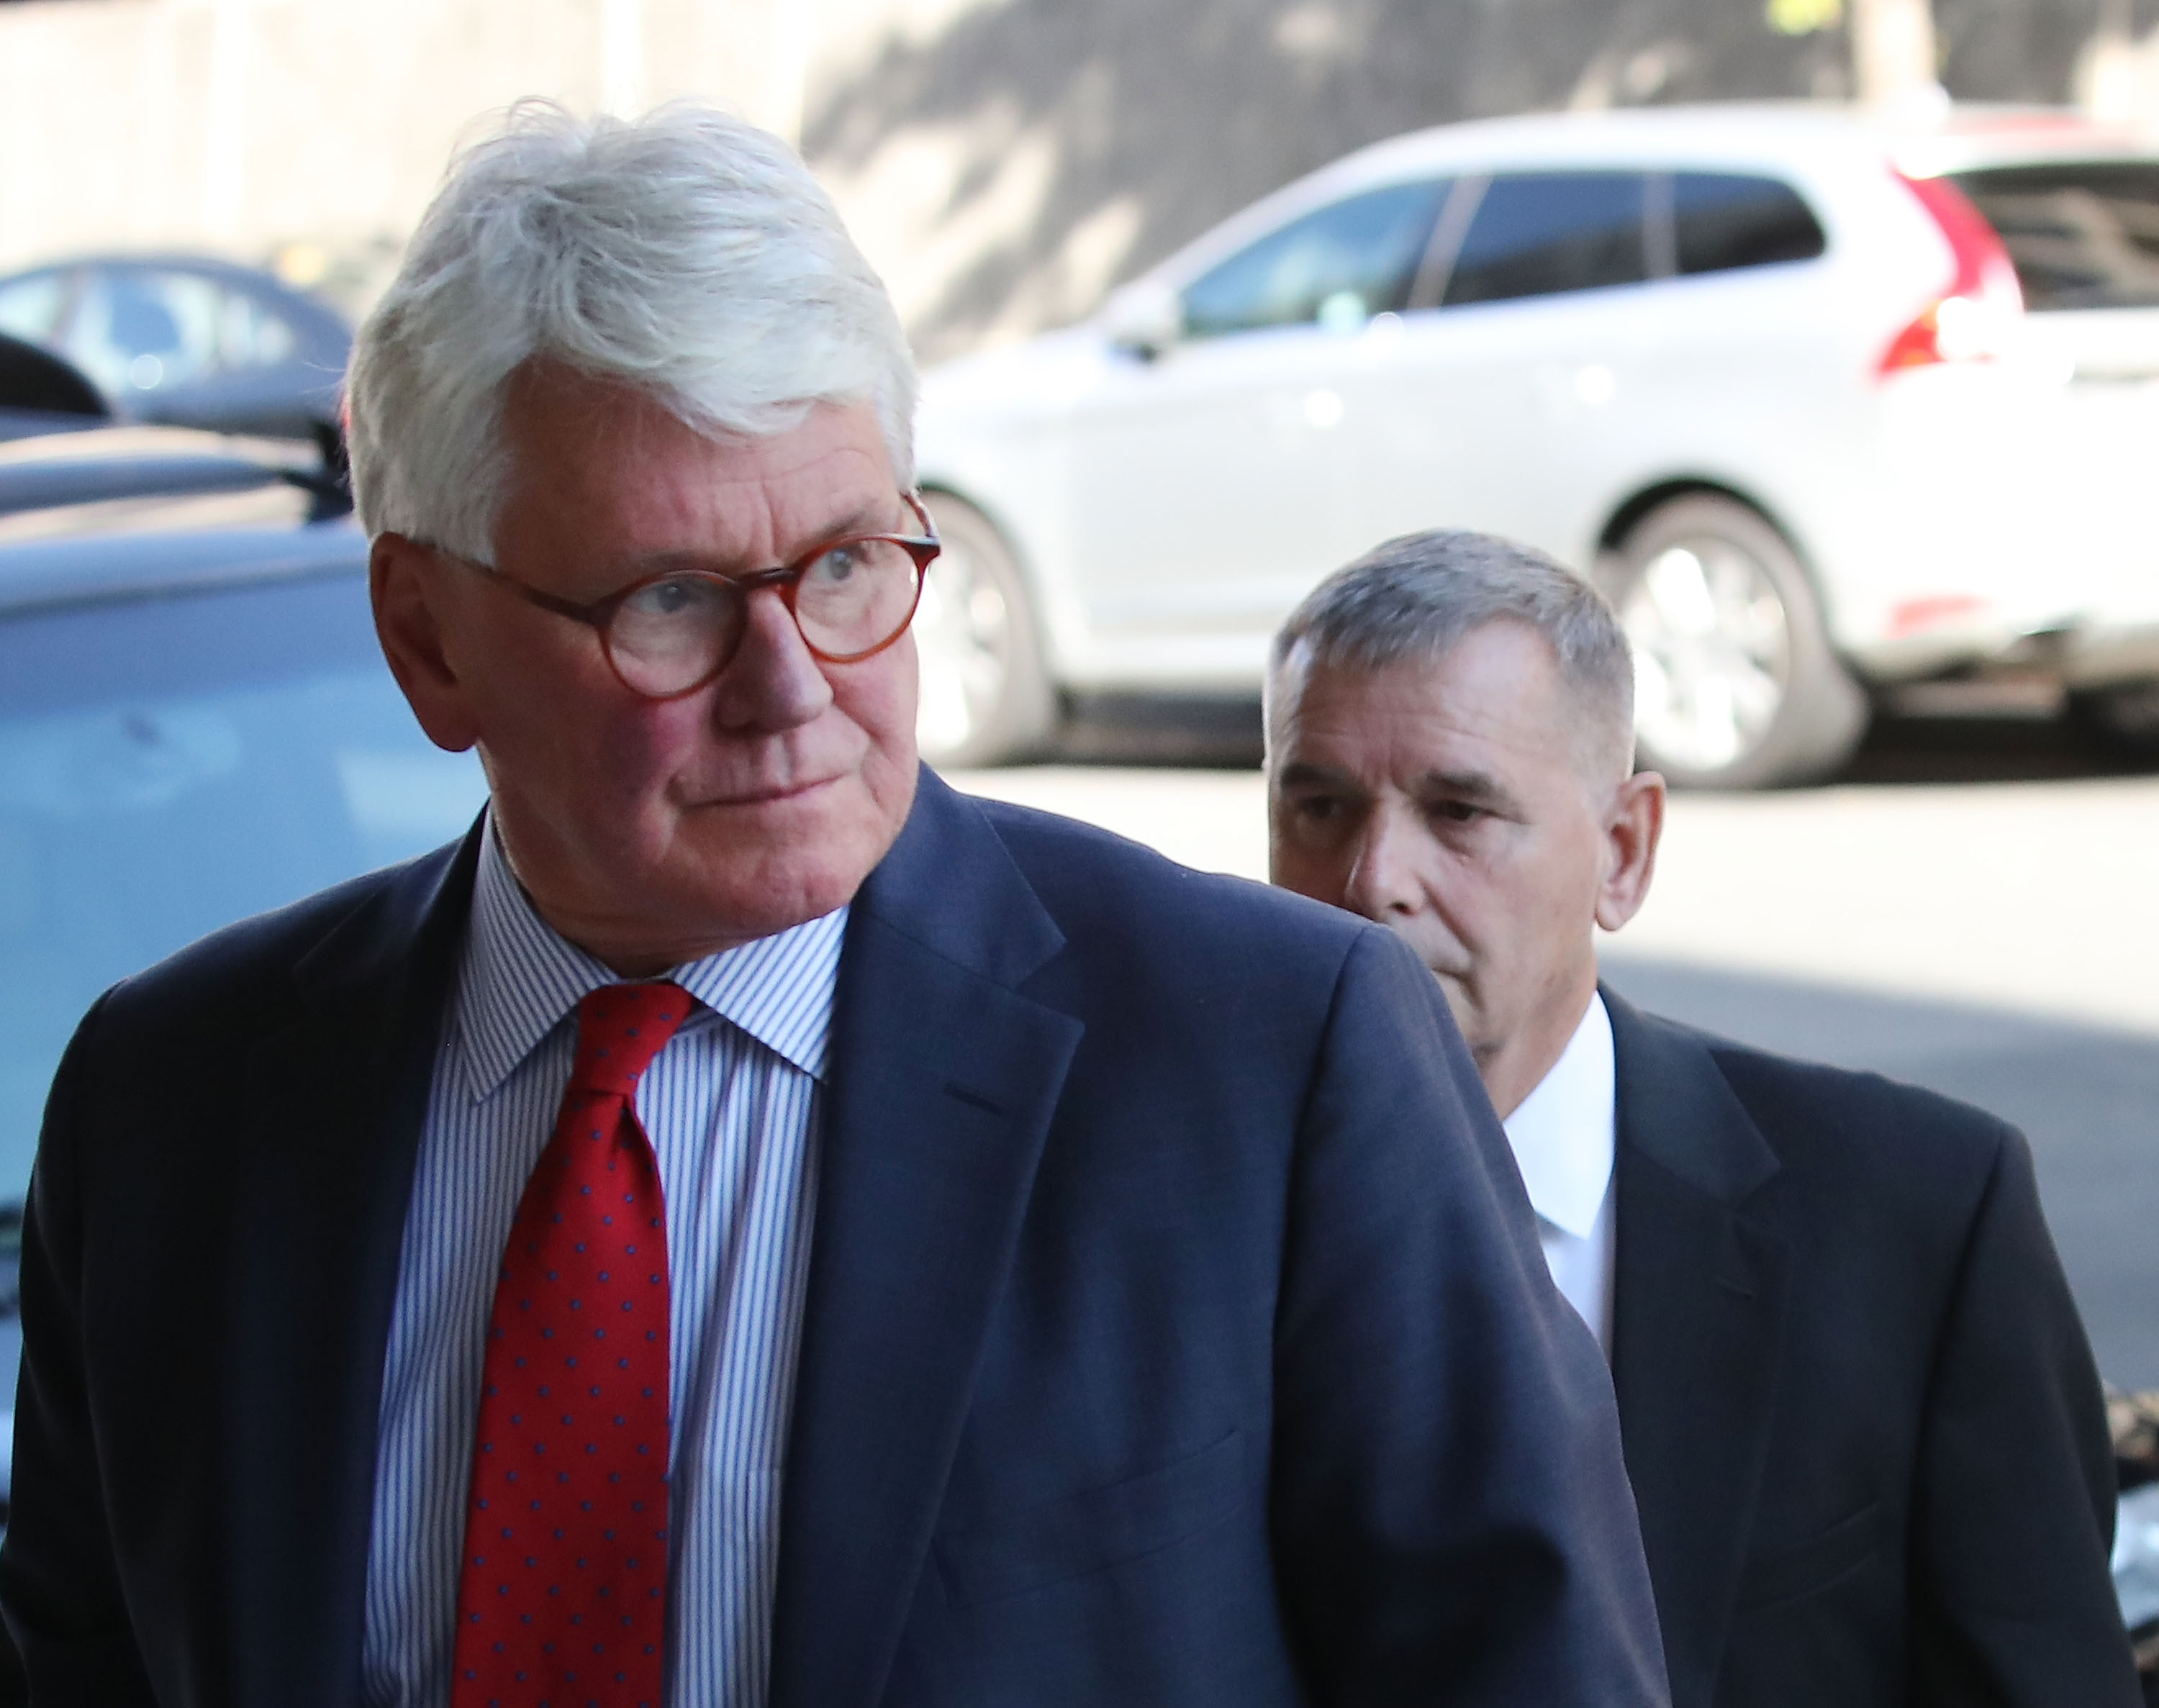 Retired Gen. James Cartwright, (R), arrives for a hearing with his attorney Greg Craig (L), at U.S. District Court, October 17, 2016. (Mark Wilson/Getty Images)